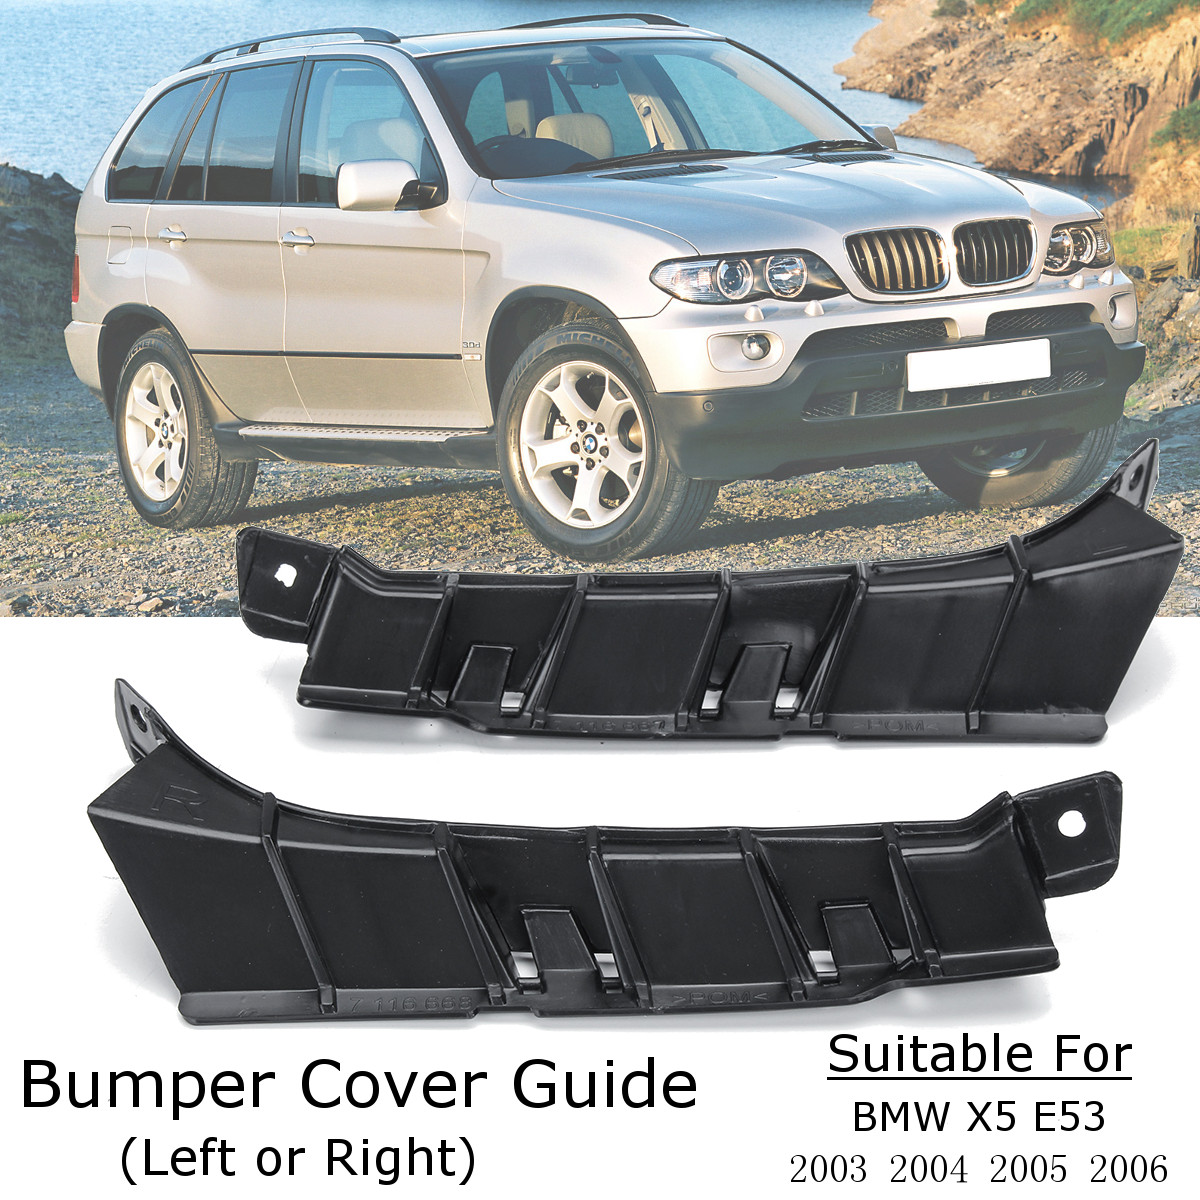 Car Front Left / Right Bumper Cover Bar Support Bracket Holder Guide for BMW X5 E53 2003 2004 2005 2006 51117116667 51117116668 pair car front headlamp clear lens headlight plastic shell clear cover for bmw e90 e91 2004 2005 2006 2007